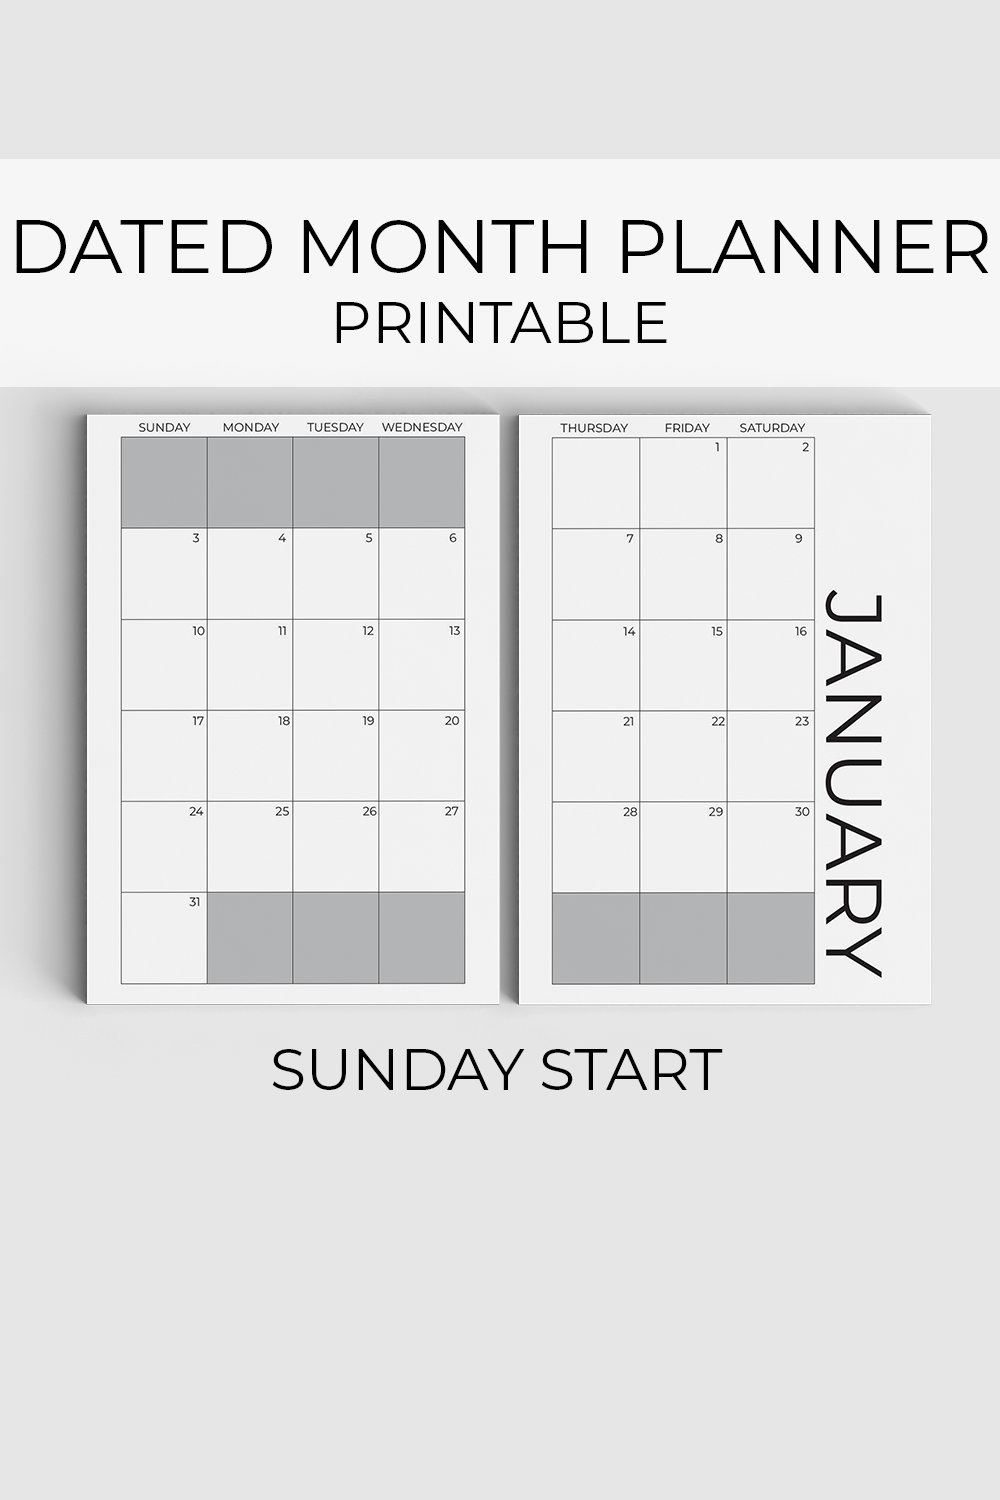 2021 Monthly Planner Printable, Sunday Start, Dated Planner throughout 2021 Monthly Planner 12 Month